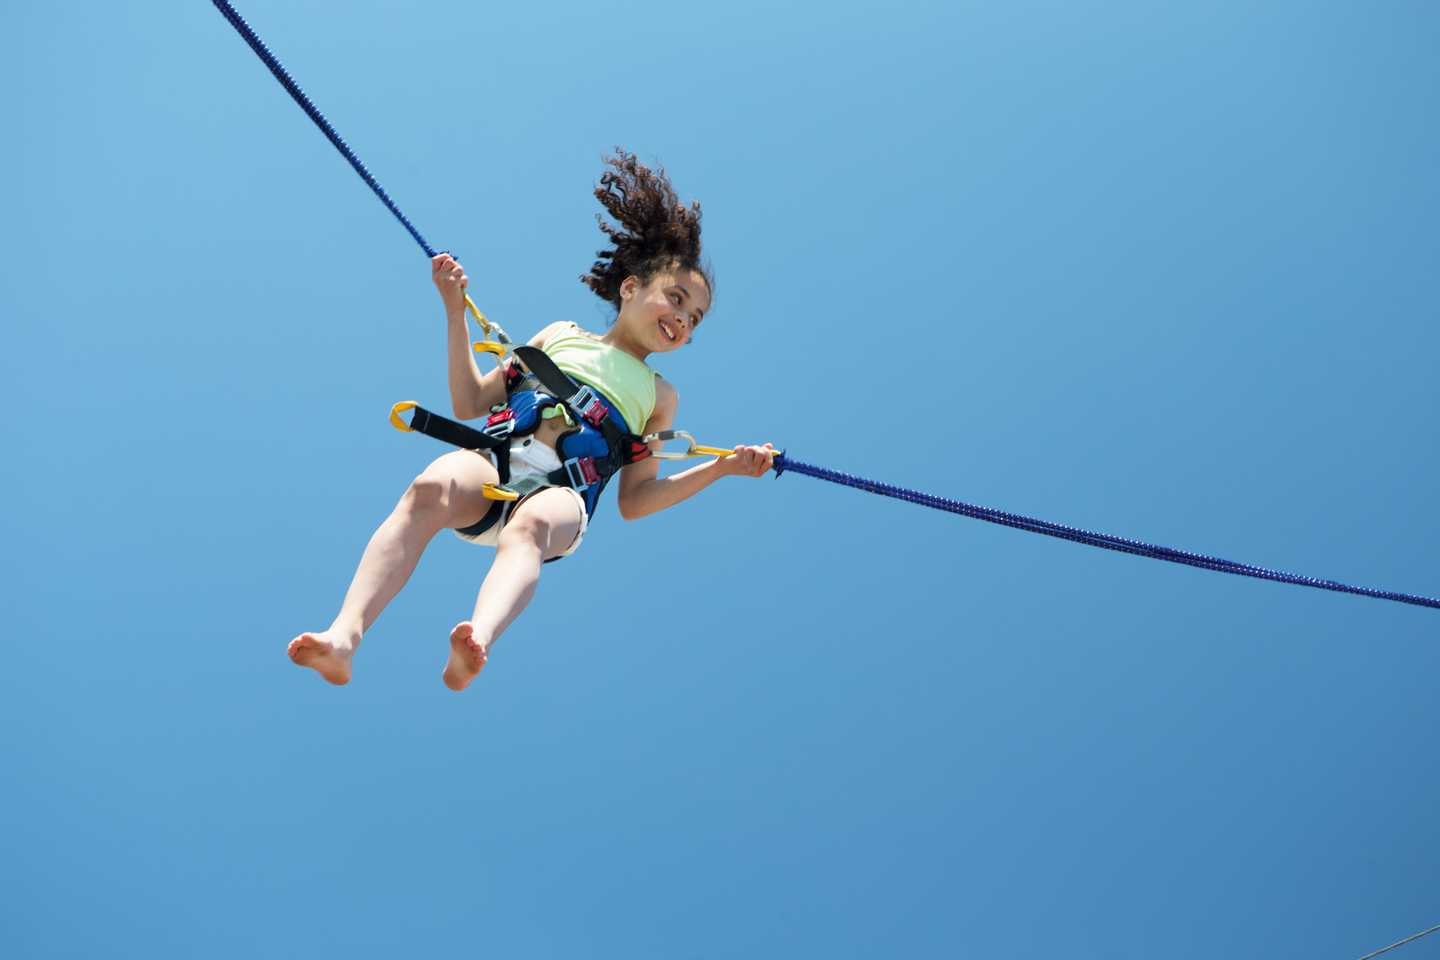 A child on a bungee trampoline